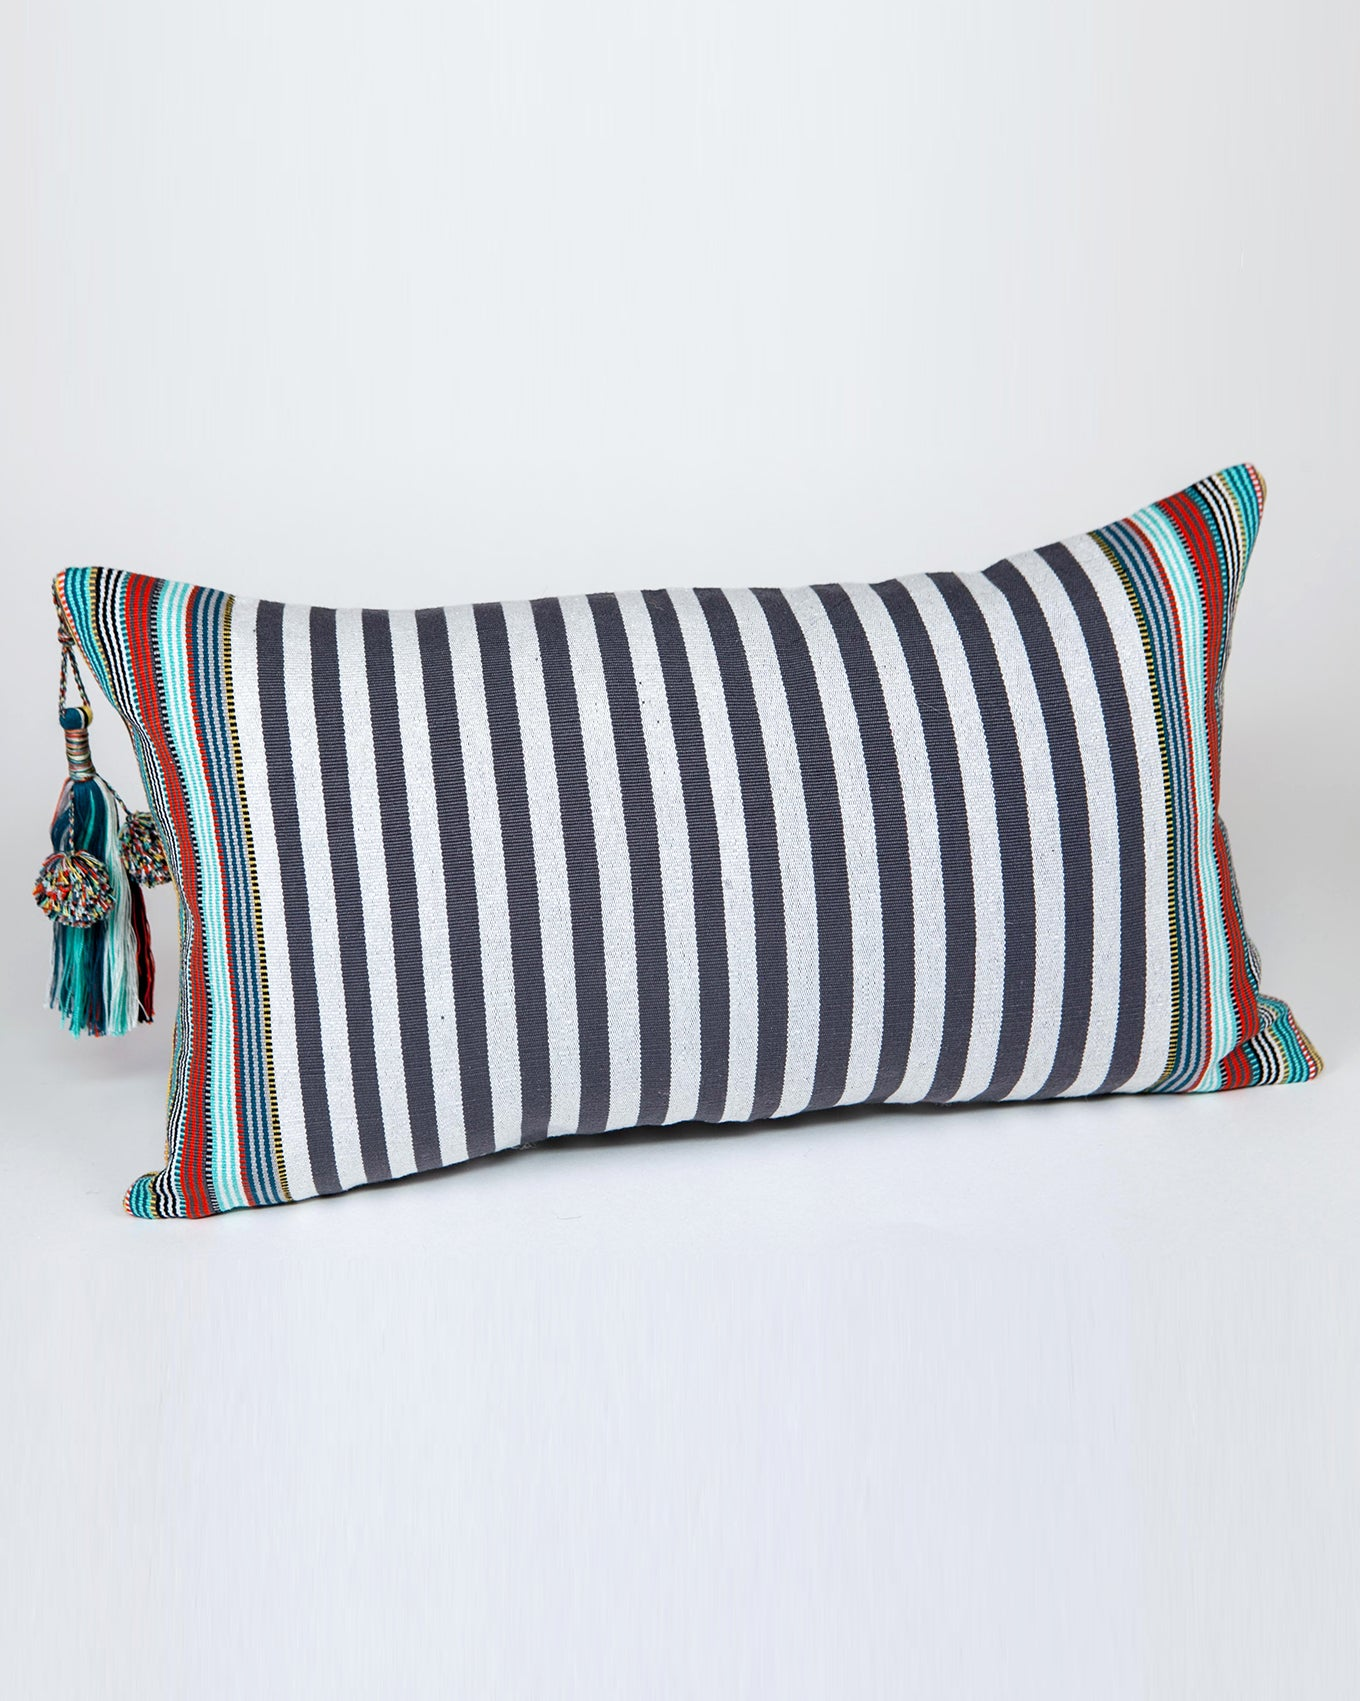 Handwoven cotton pillow grey and white with green stripes and colored tassels